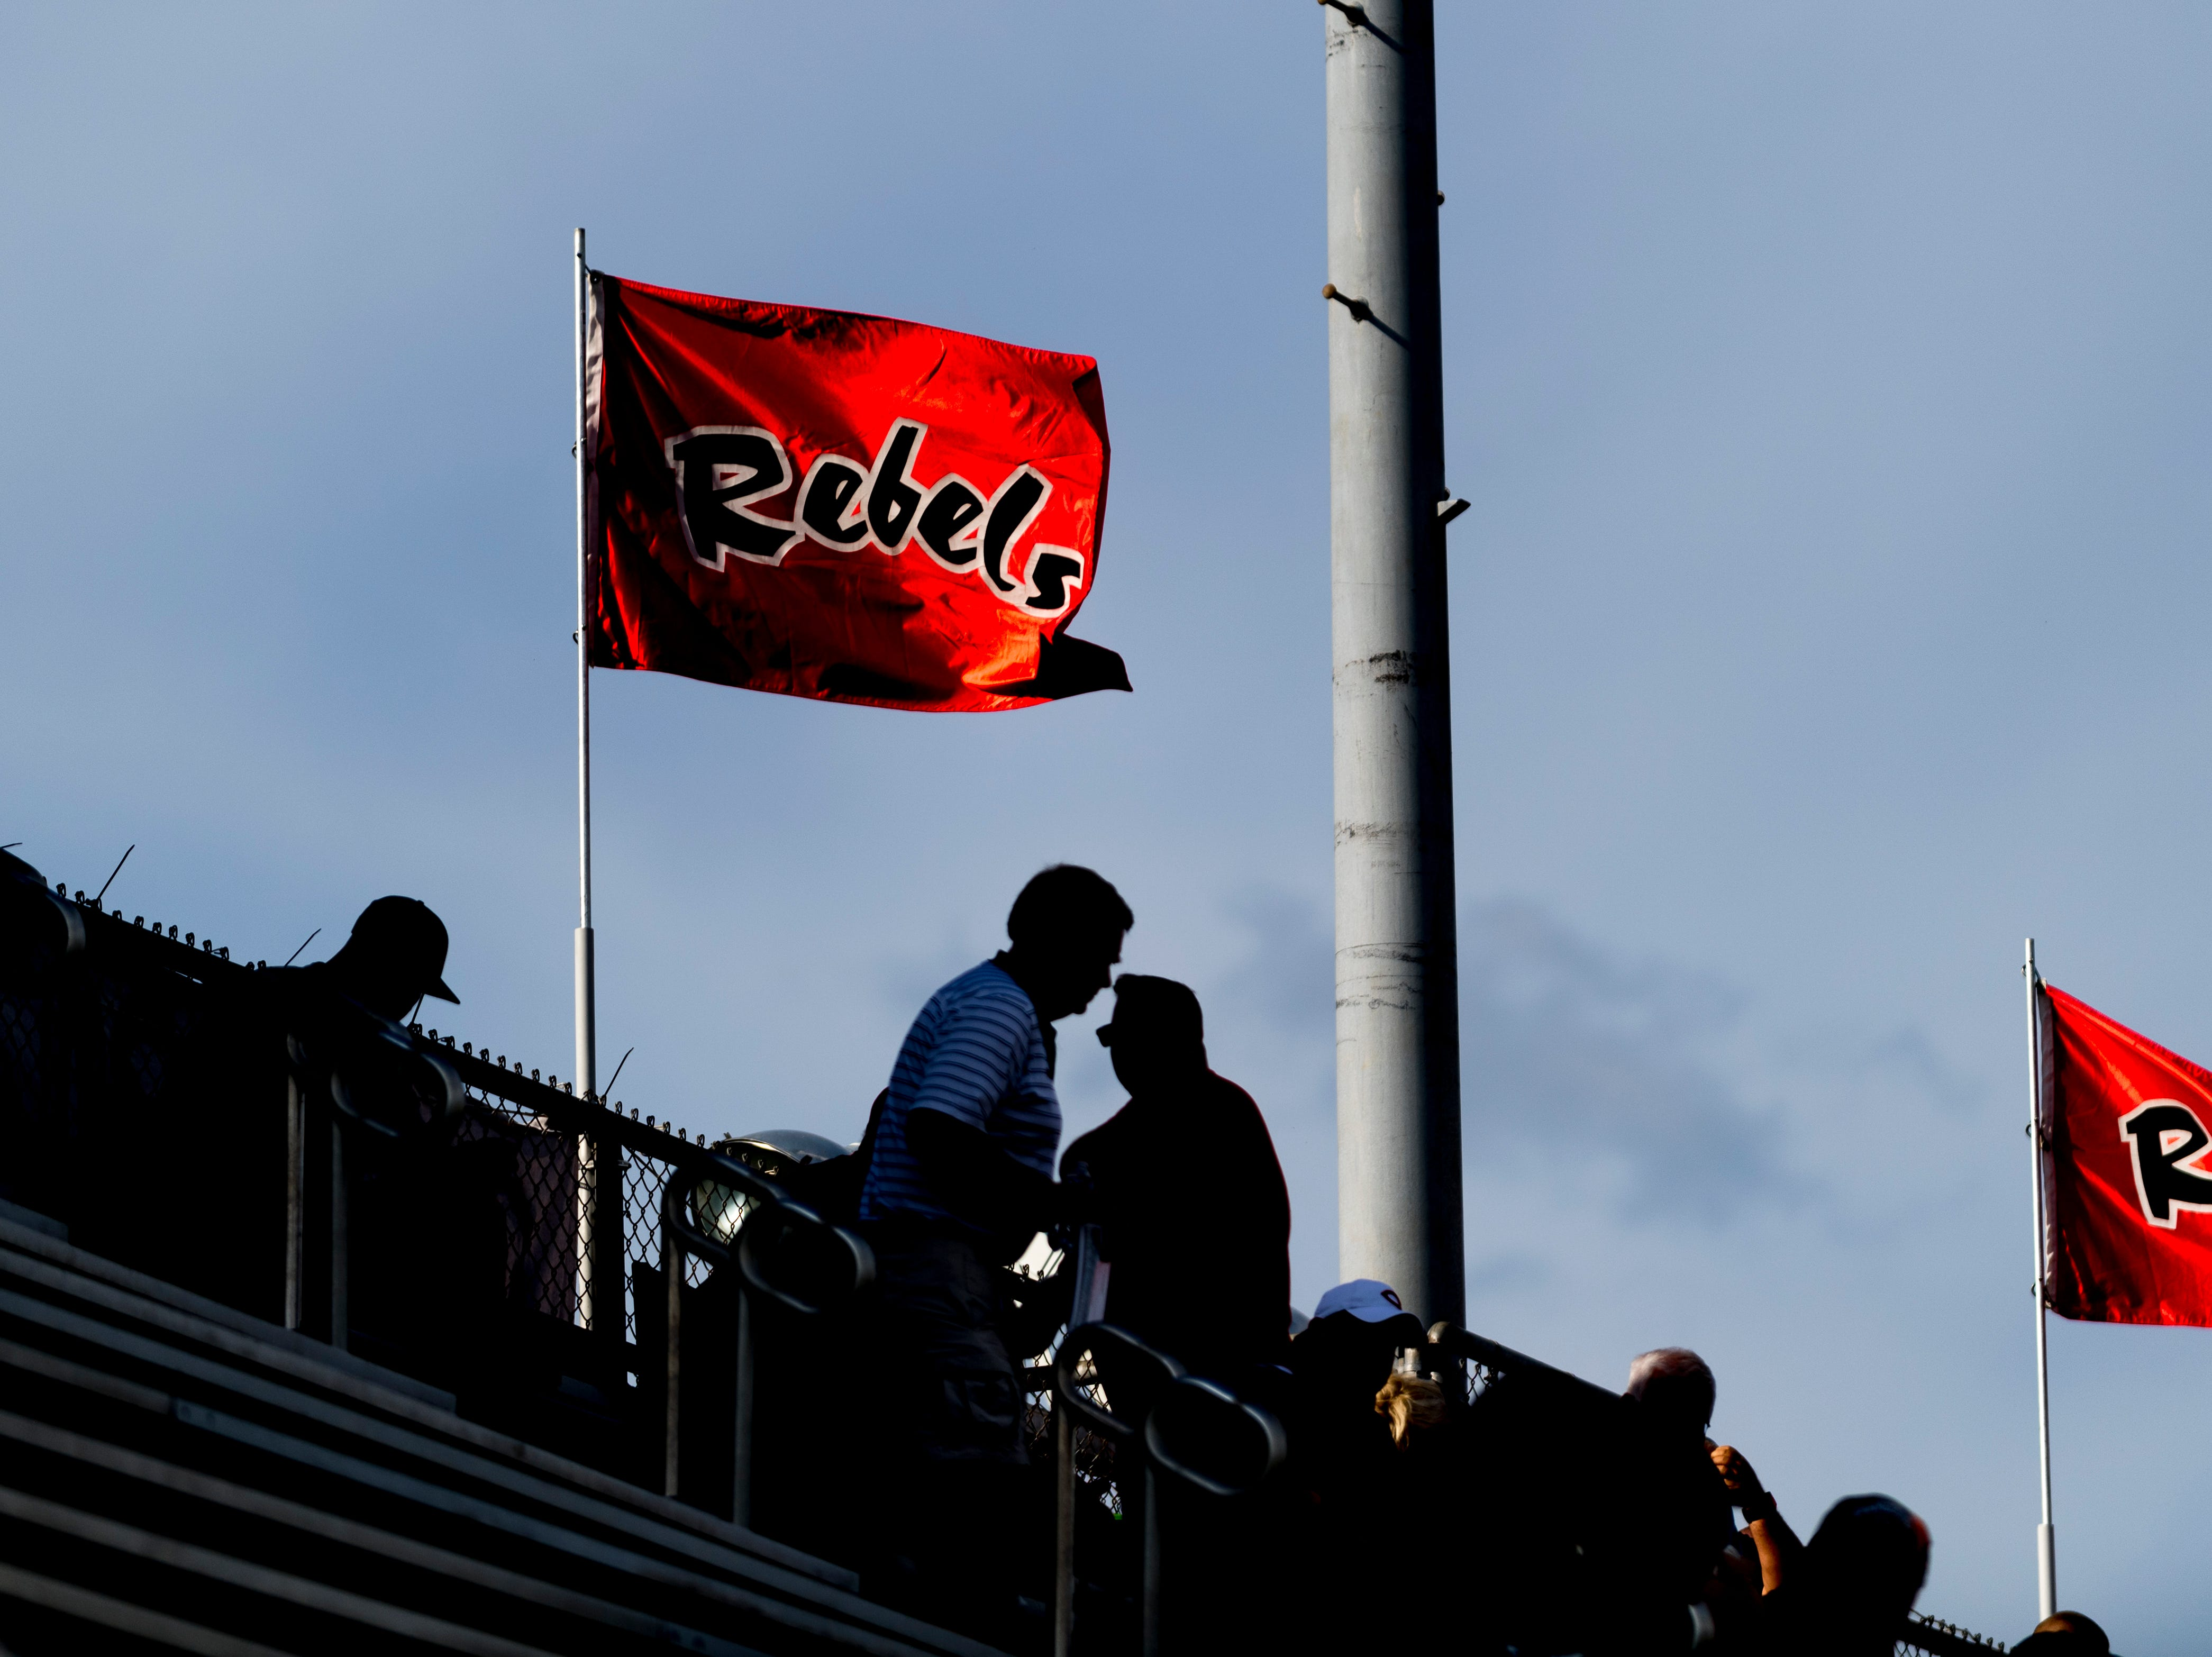 Fans begin arriving during a football game between Maryville and Oakland at Maryville High School in Maryville, Tennessee on Friday, August 24, 2018.